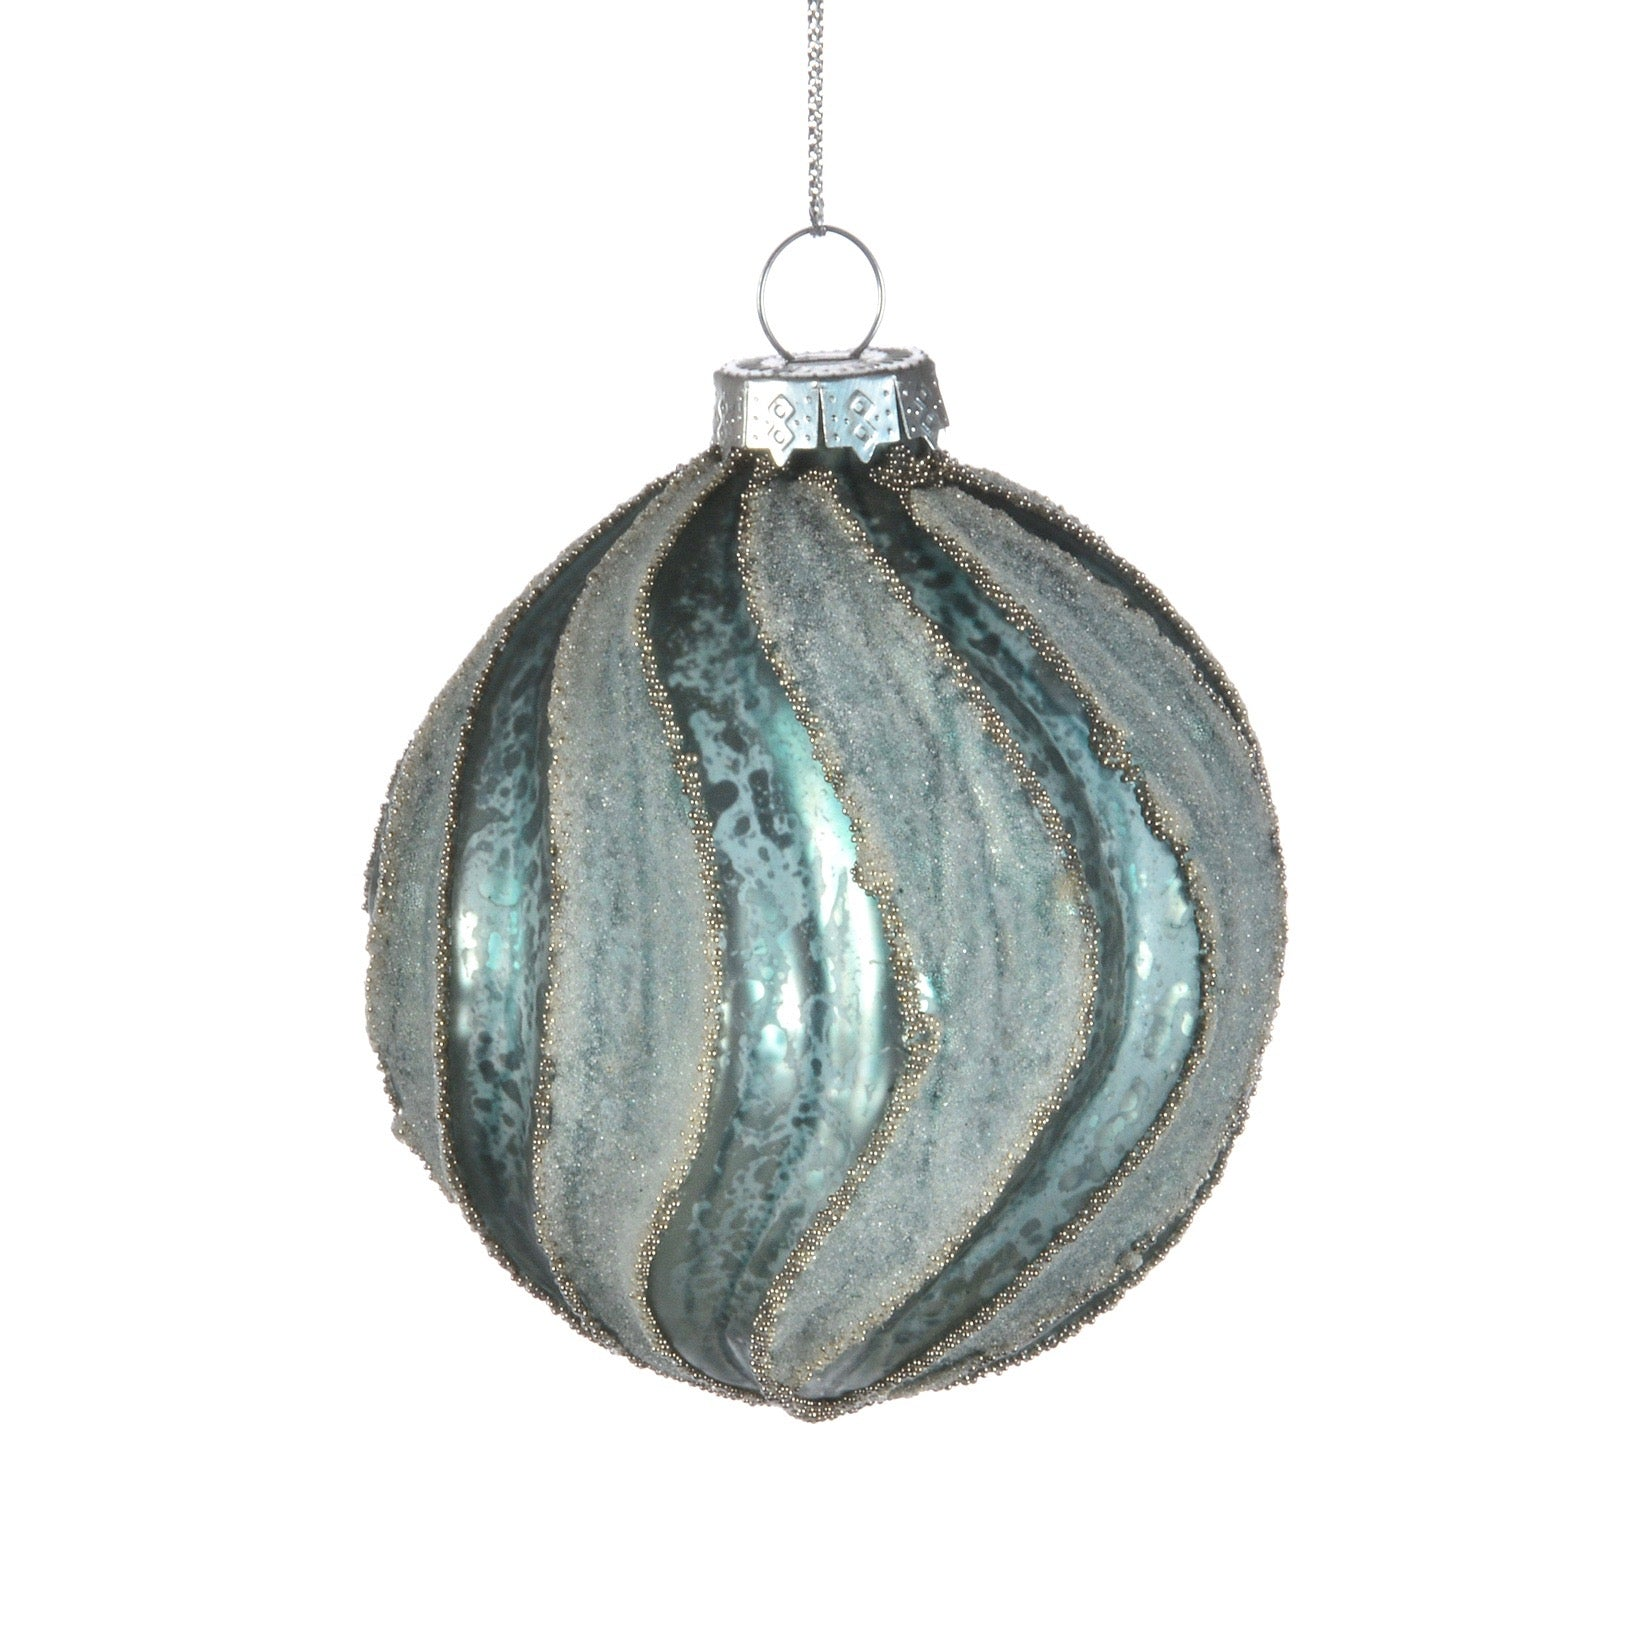 Aqua Frosted and Matte Swirl Glass Ball Christmas Ornament | Putti